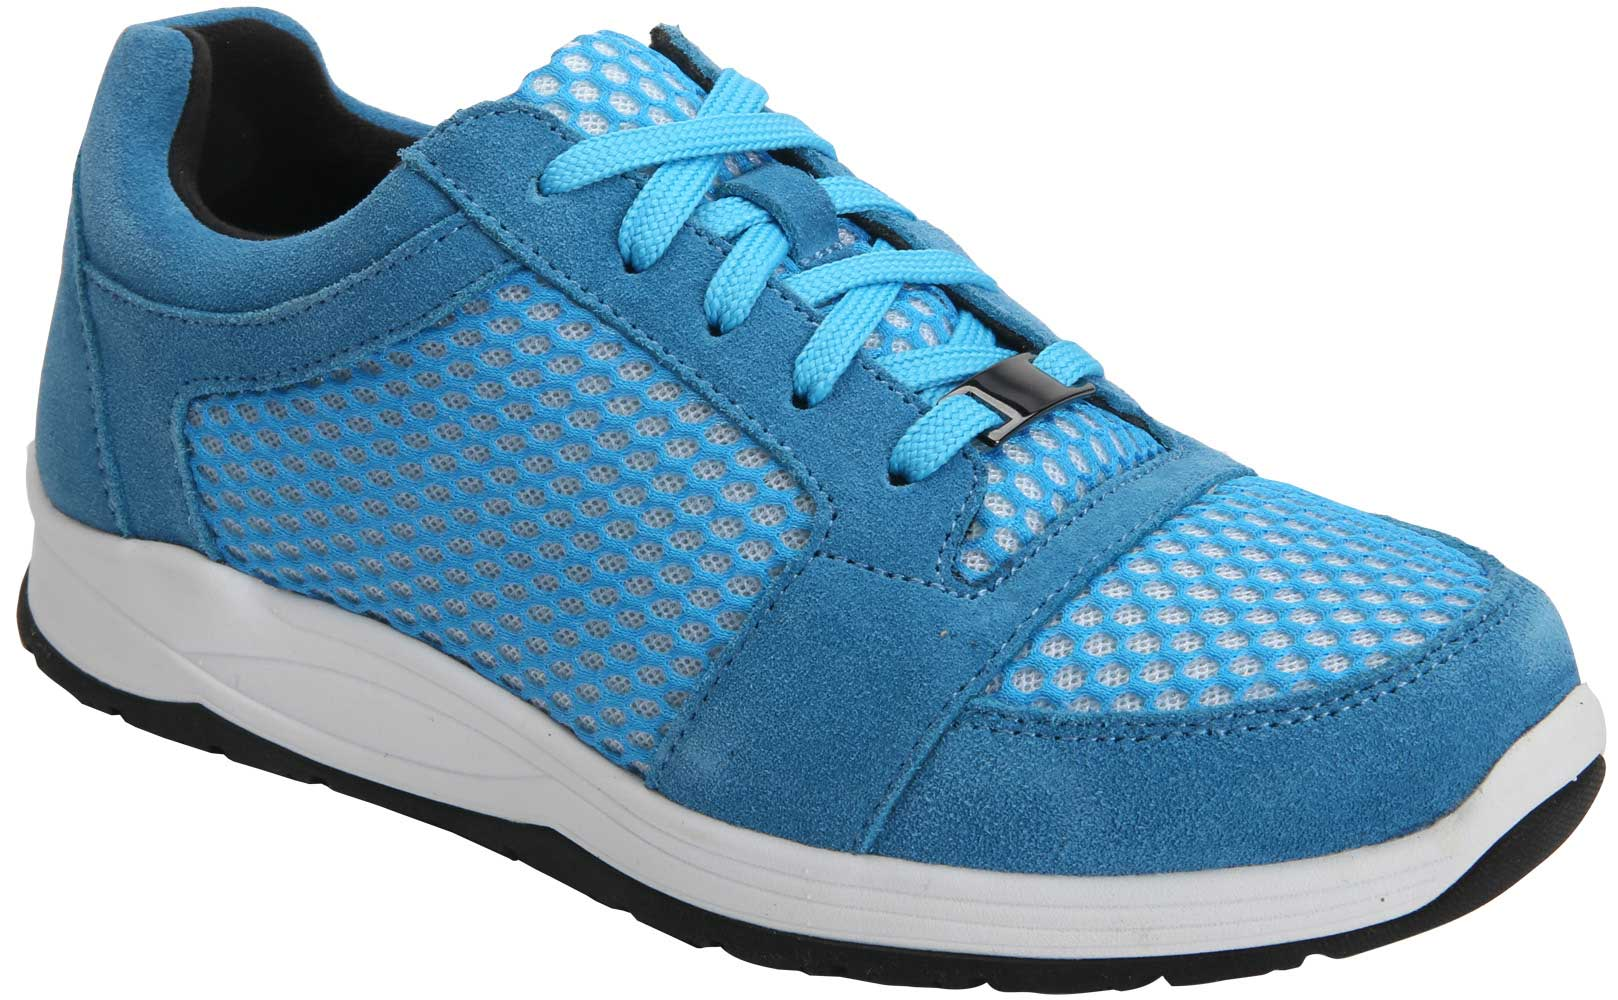 Drew Shoes - Gemini - Blue - Athletic Shoes